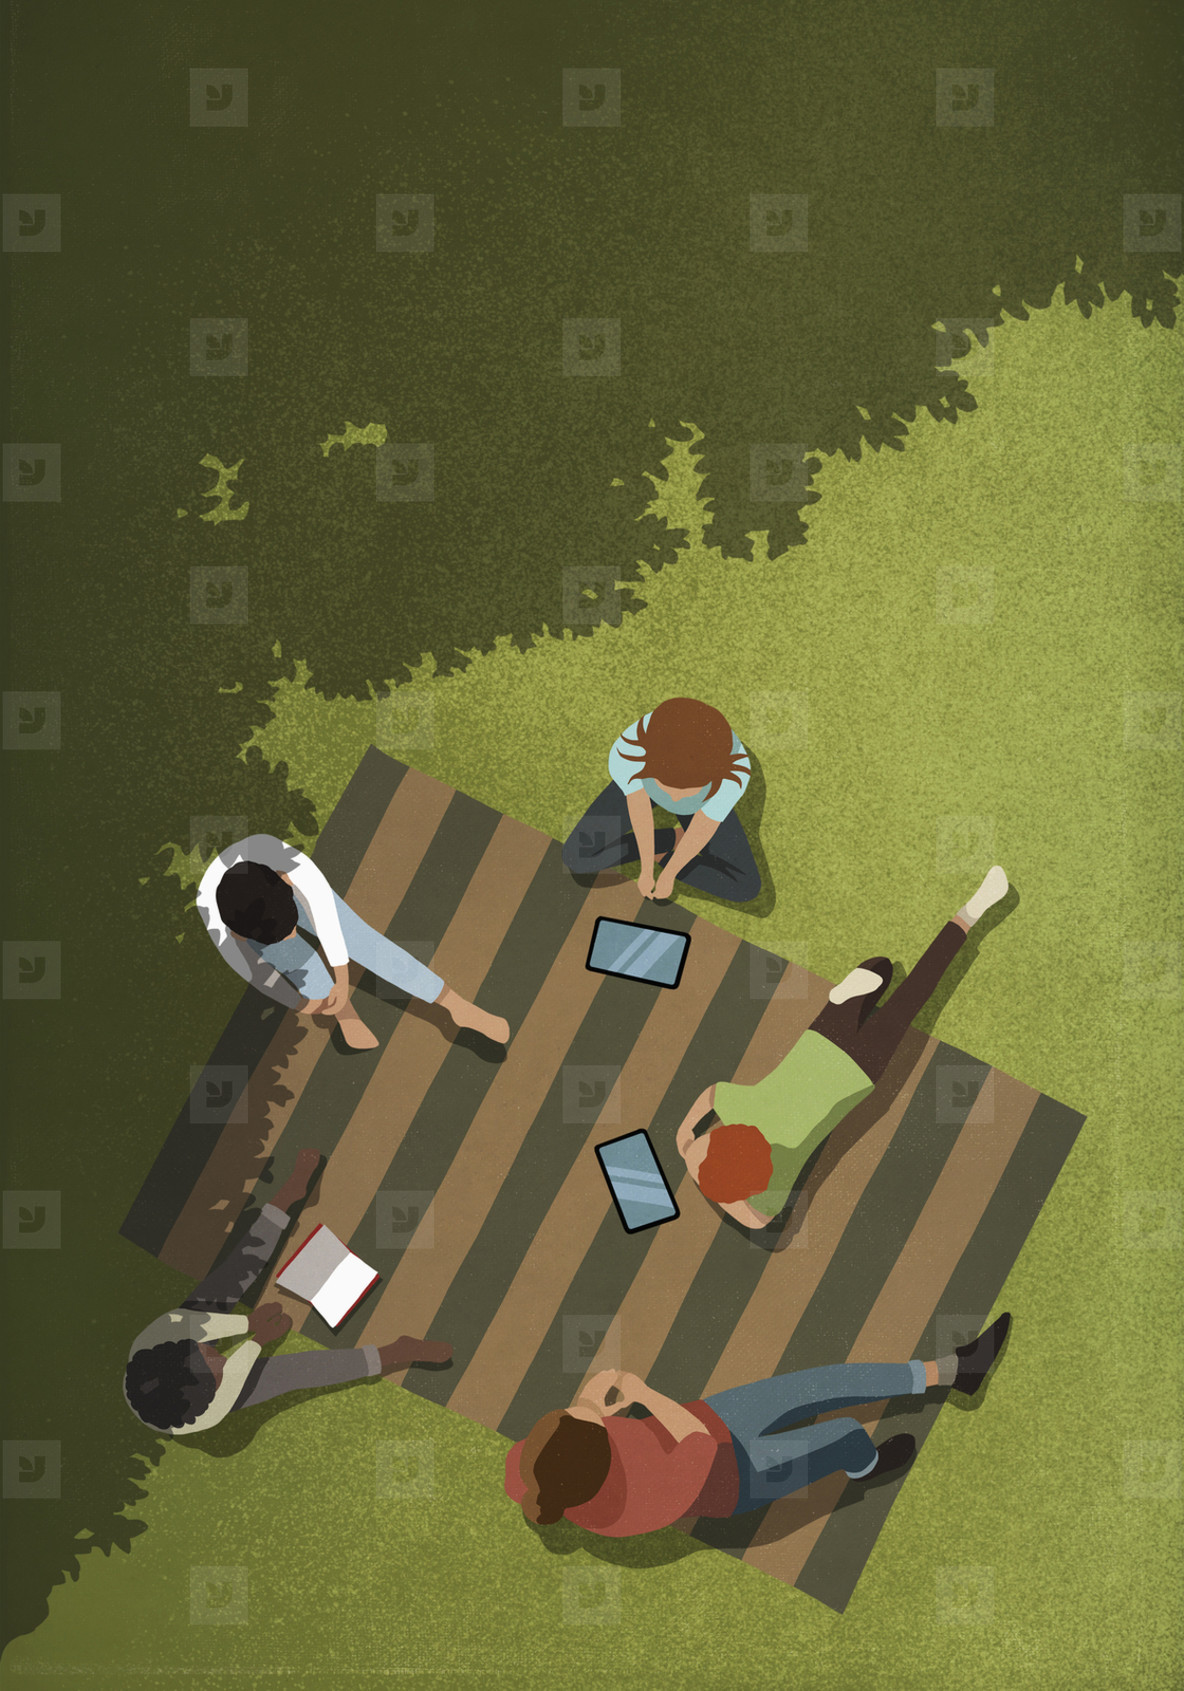 Friends social distancing with book and digital tablets in park